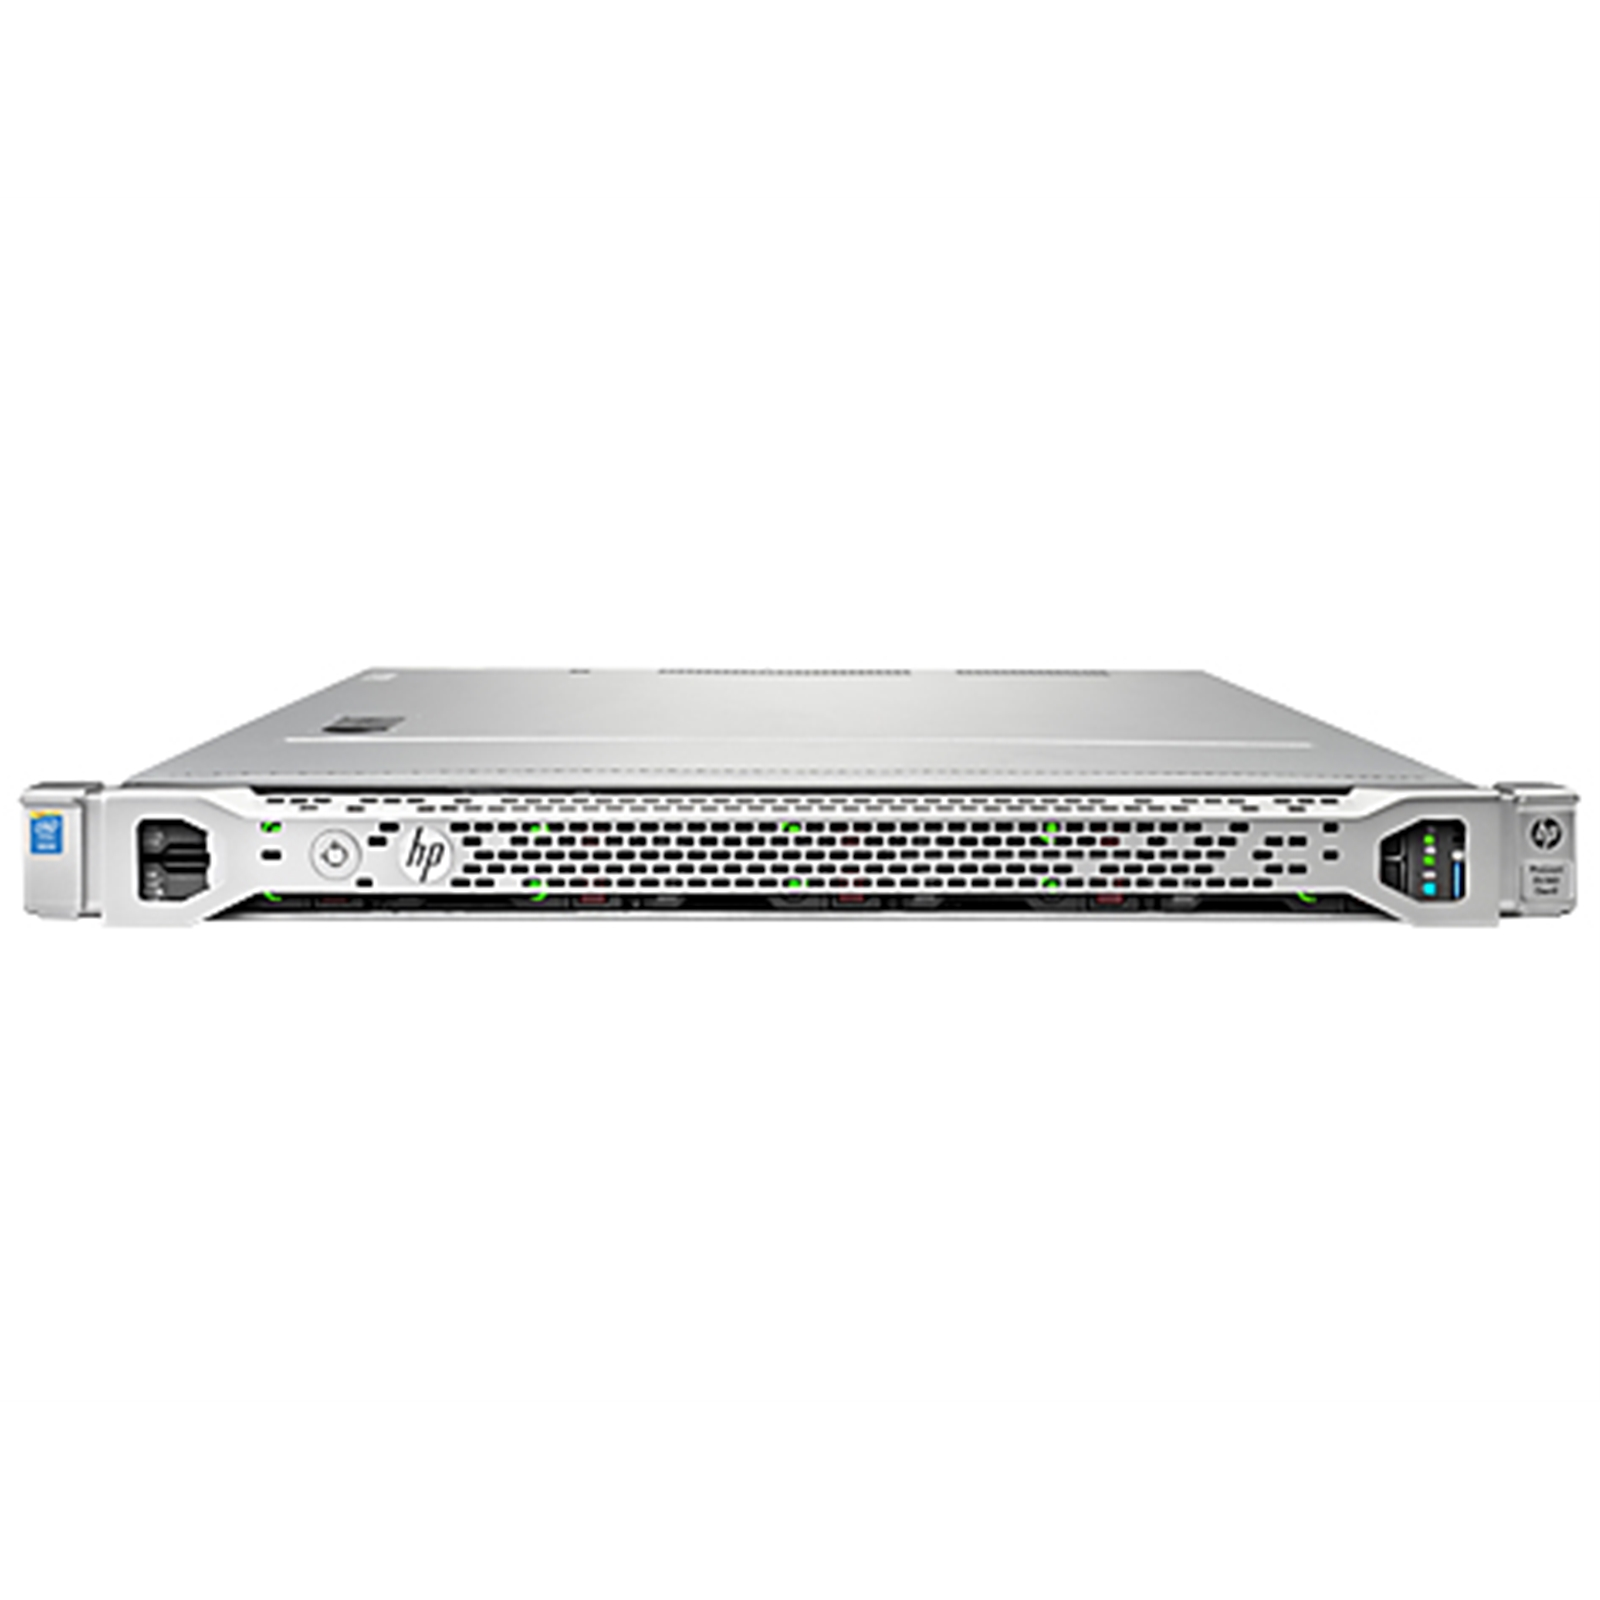 HPE 830572-B21 ENTERPRISE DL160 GEN9 E5-2620V4 SFF RACK SERVER -